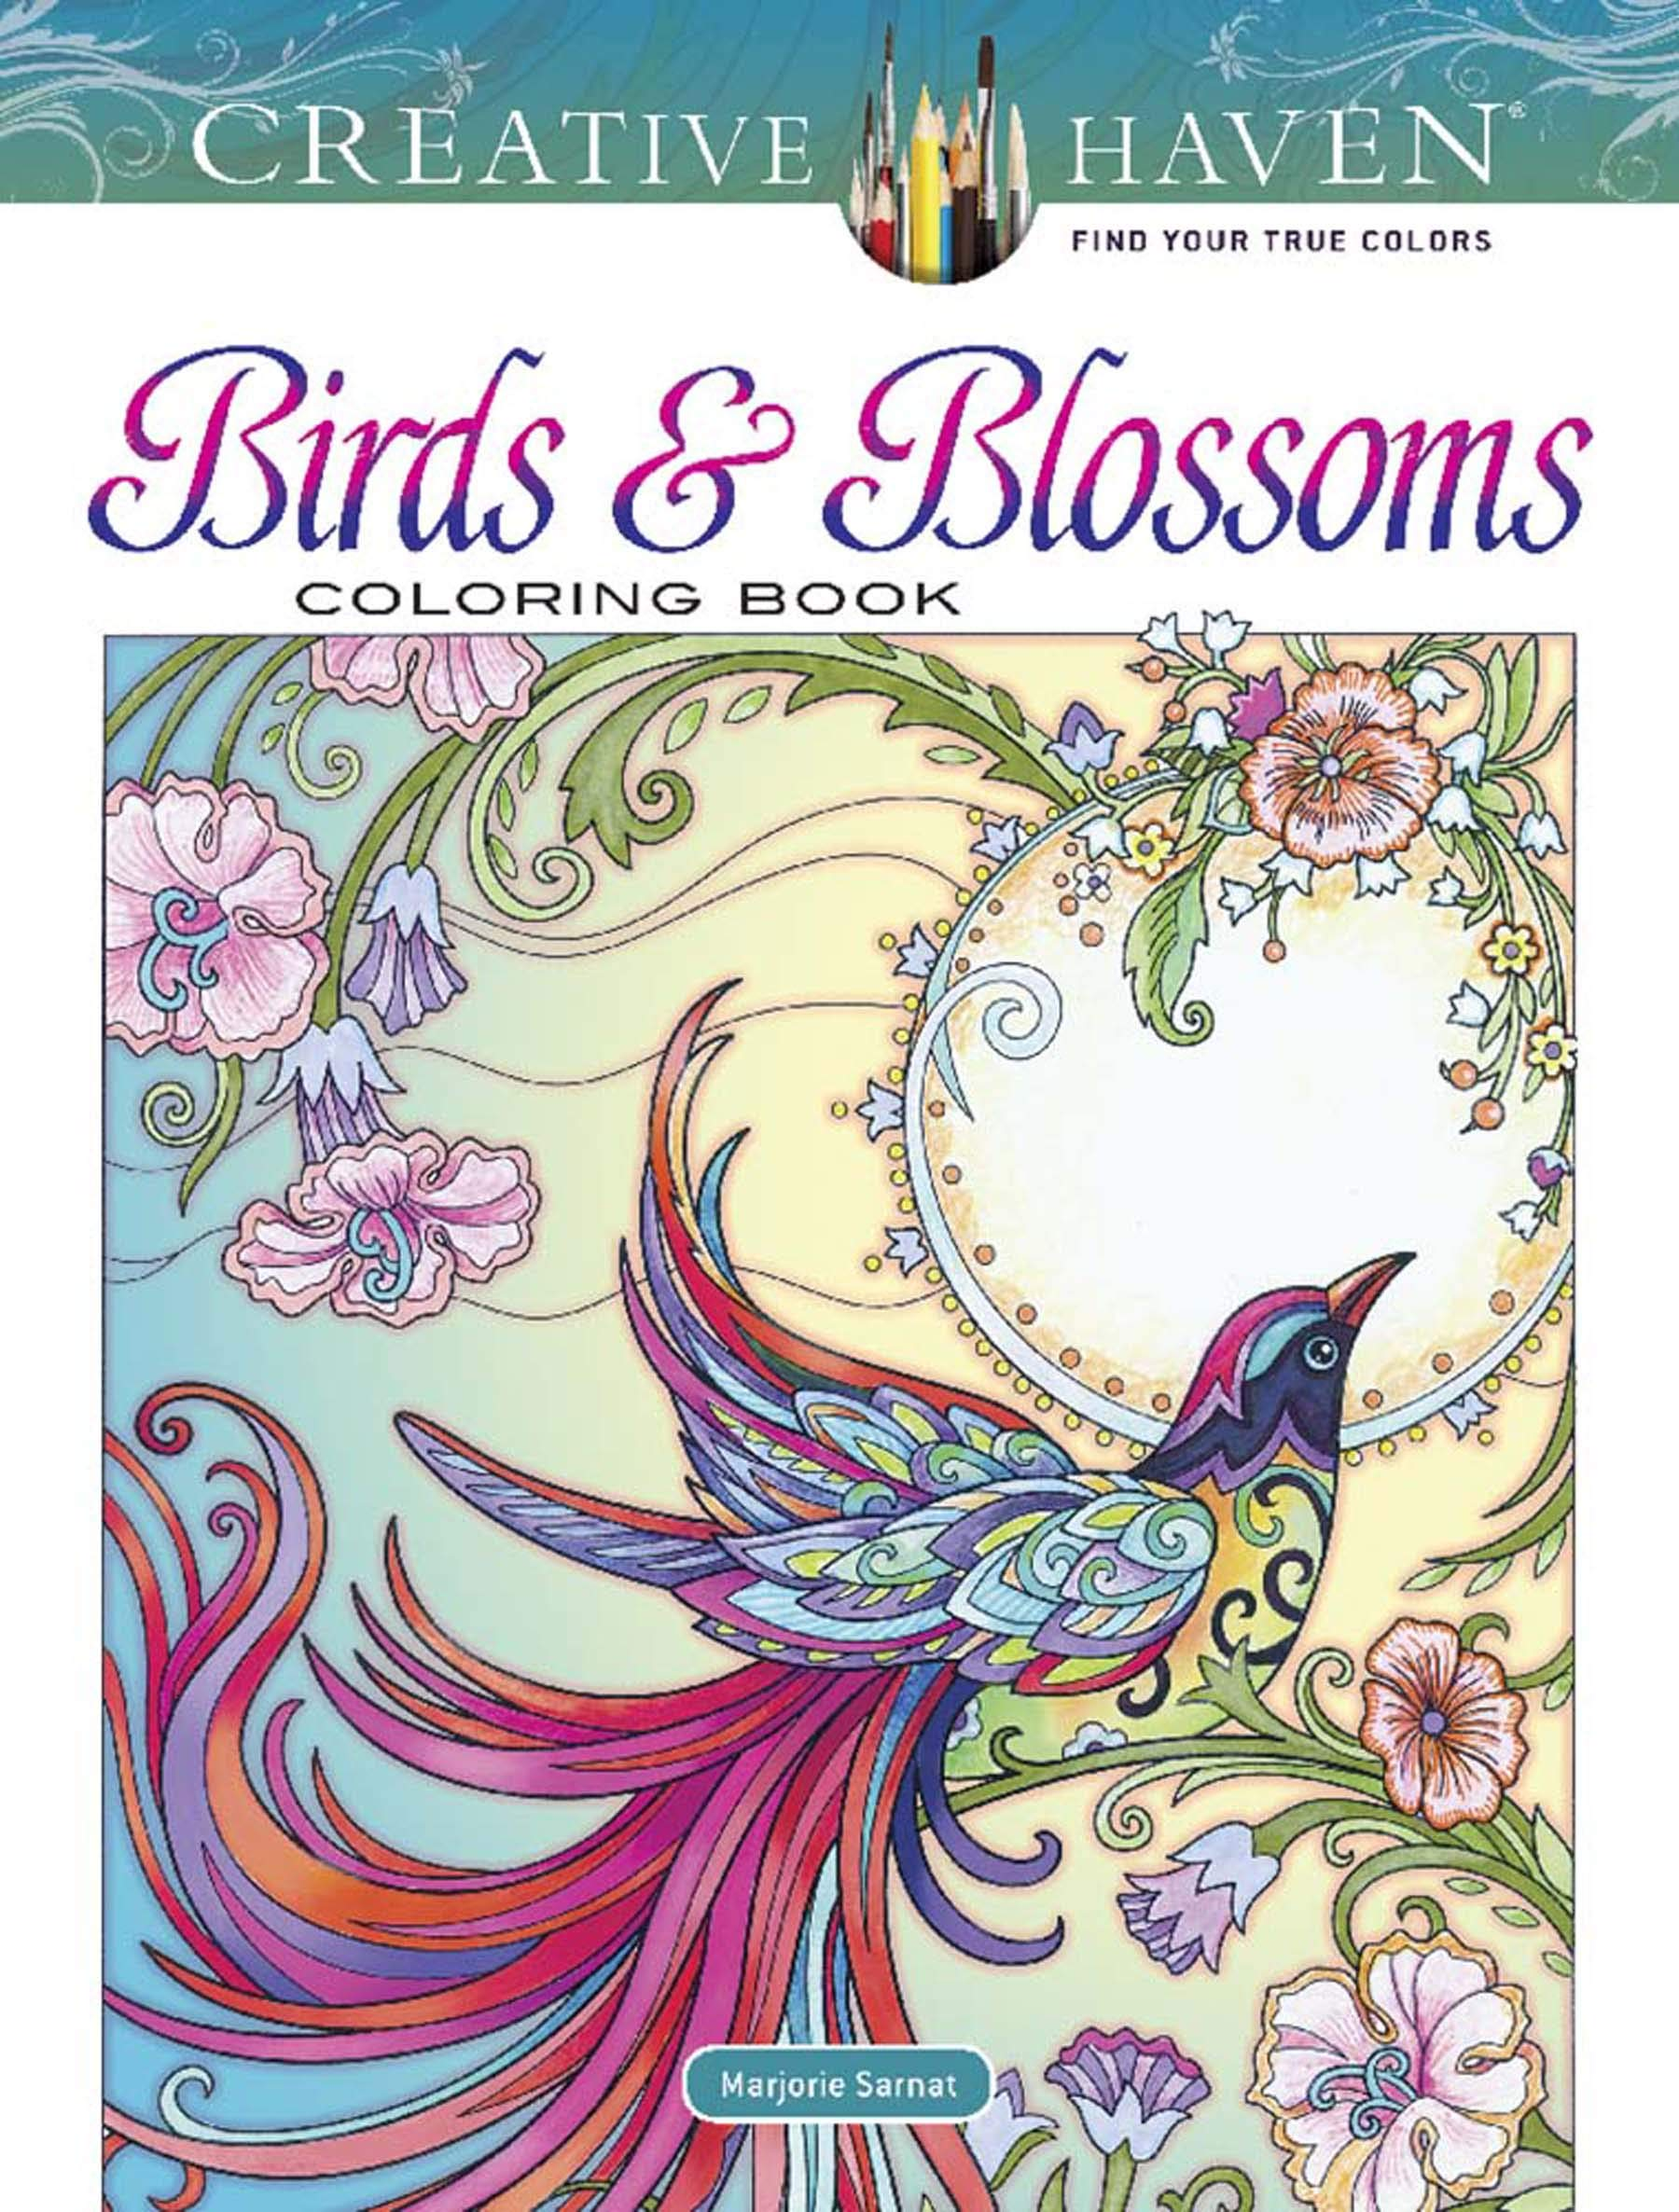 Amazon.com: Creative Haven Birds and Blossoms Coloring Book (Creative Haven  Coloring Books) (9780486832340): Marjorie Sarnat: Books